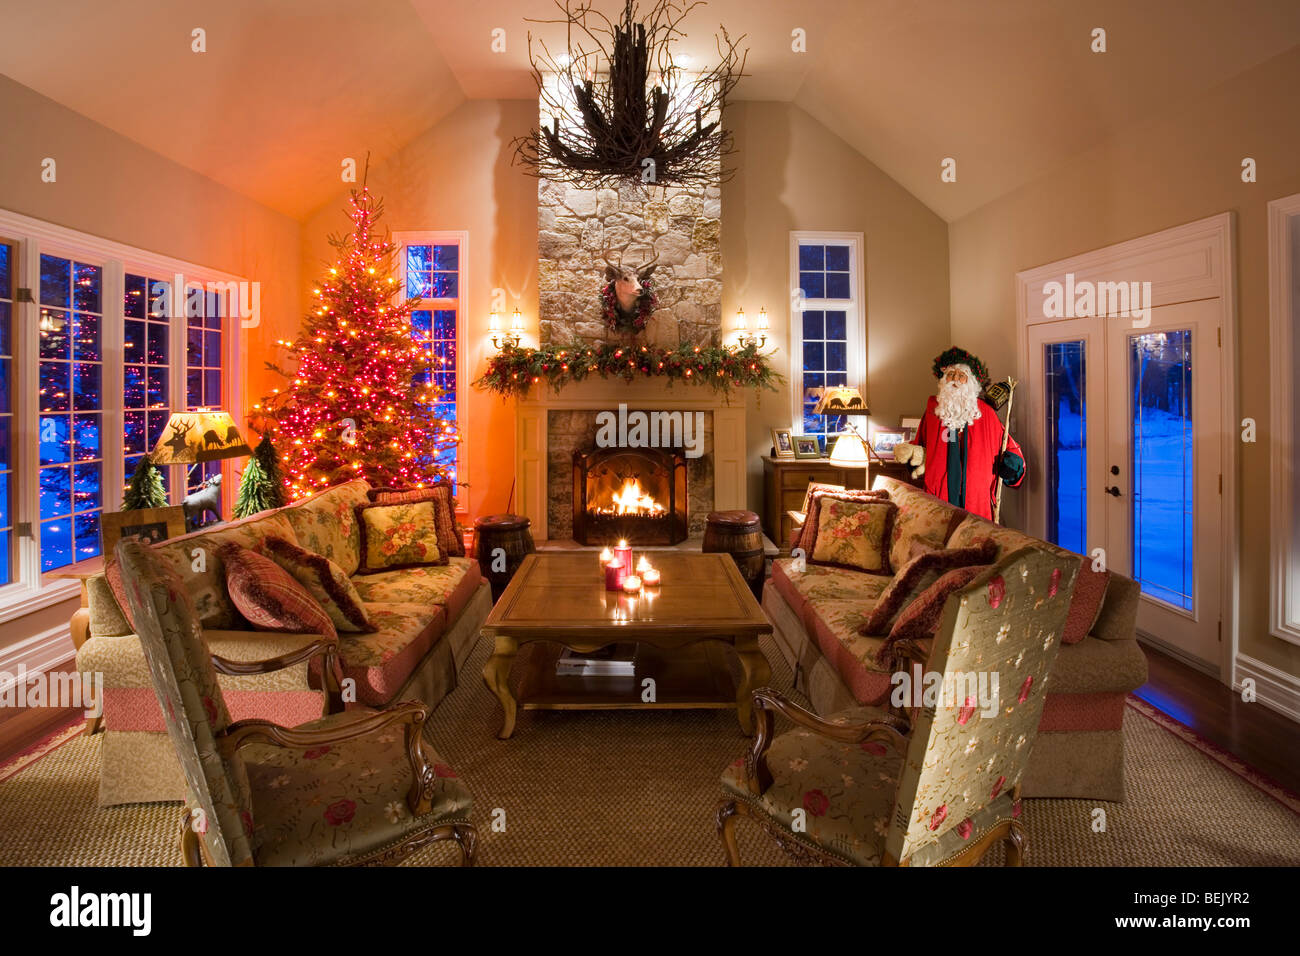 Family Room With Stone Fireplace And Christmas Tree Stock Photo